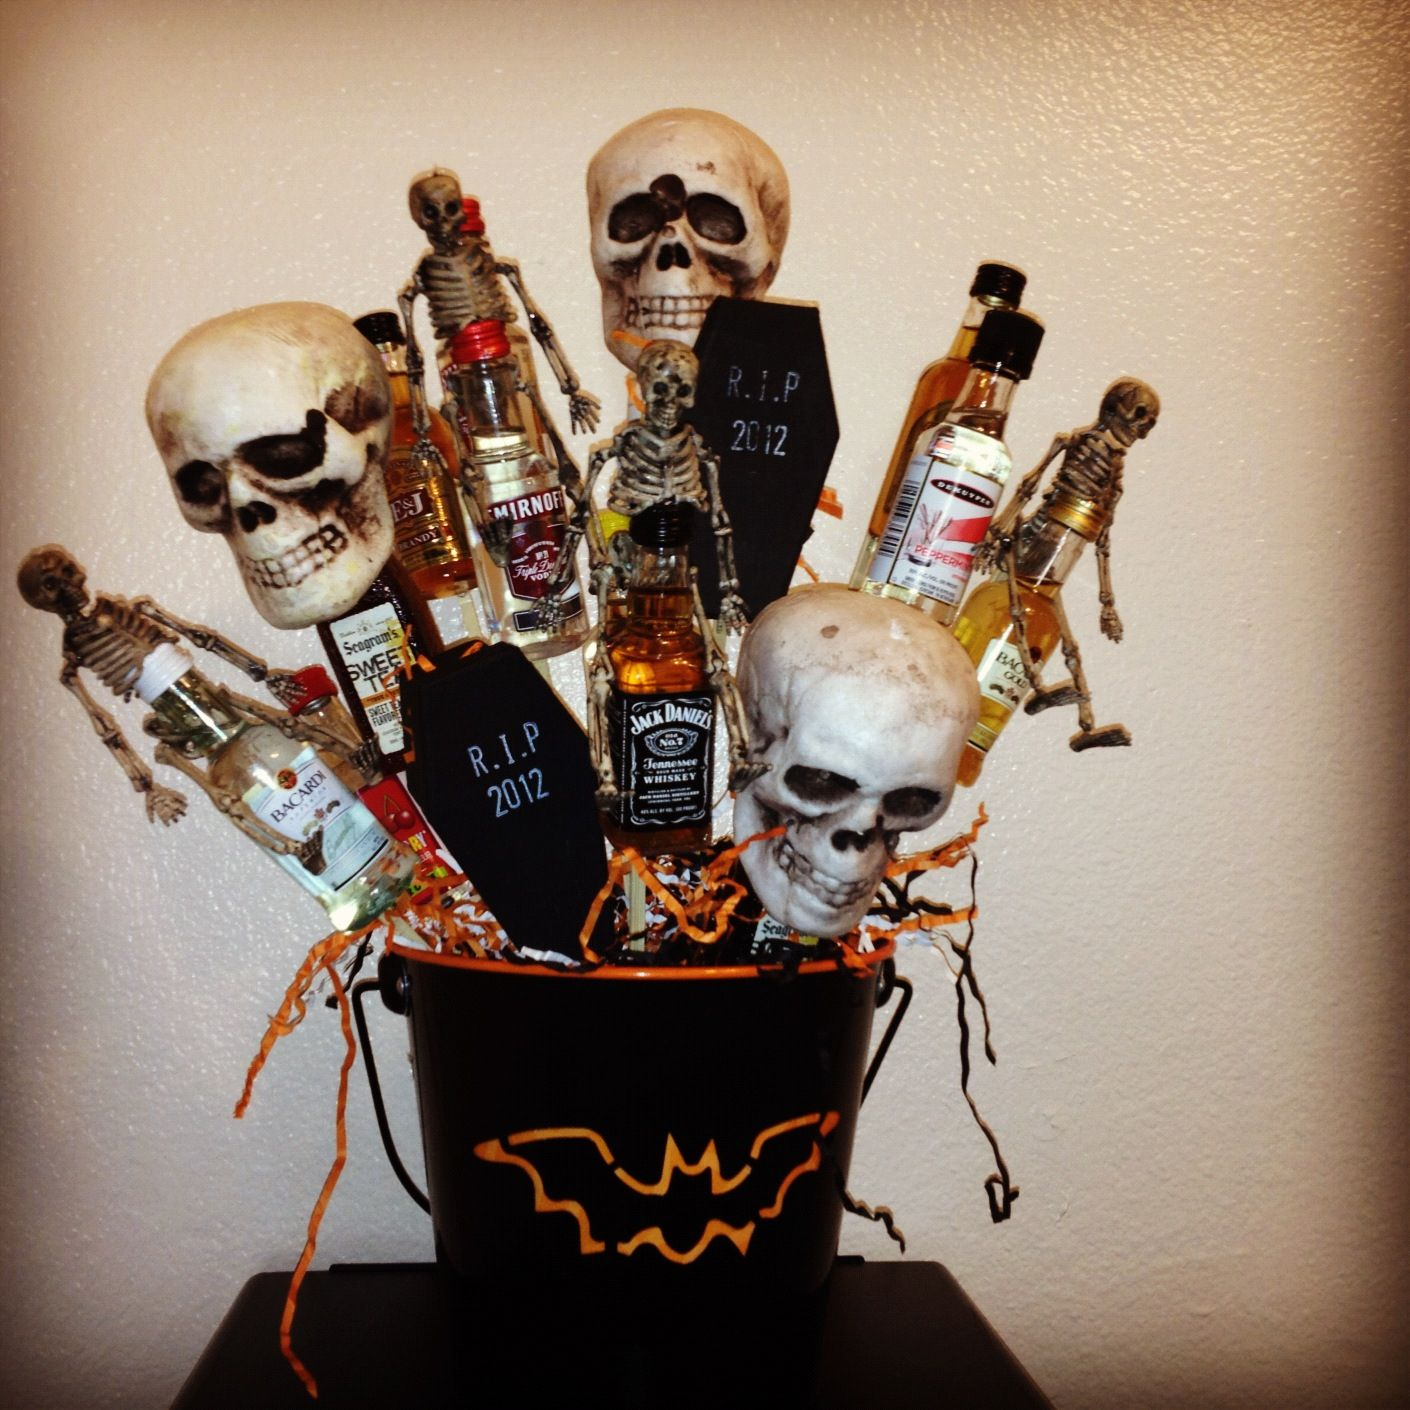 Halloween Event Ideas For Adults: Halloween Theme Gift Basket With Mini Bottles! Cost Under